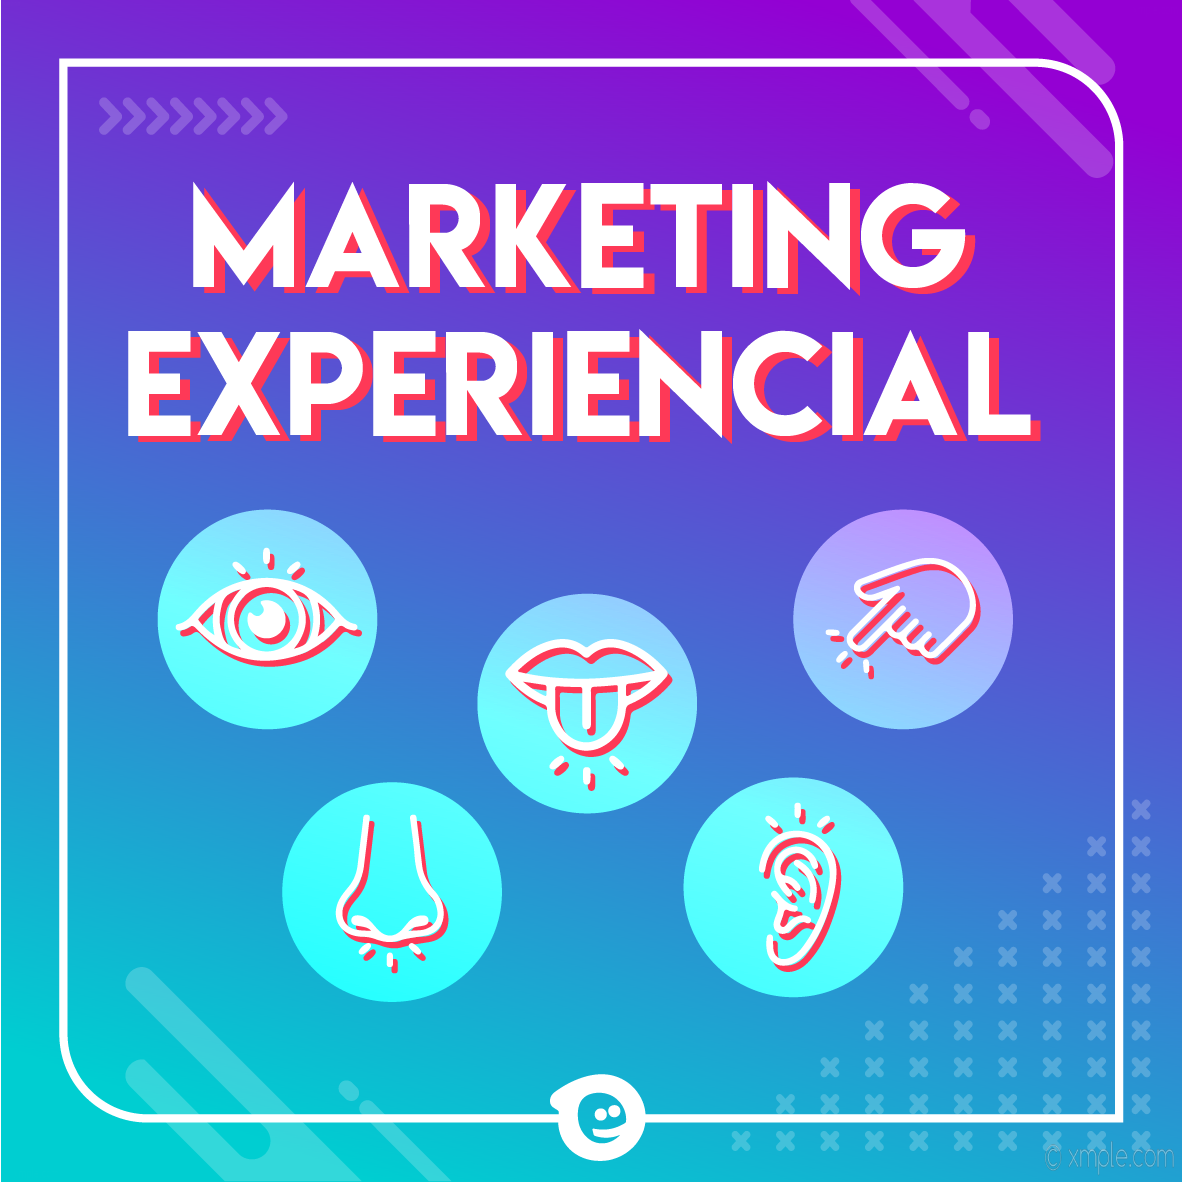 Marketing experencial en Puerto Rico